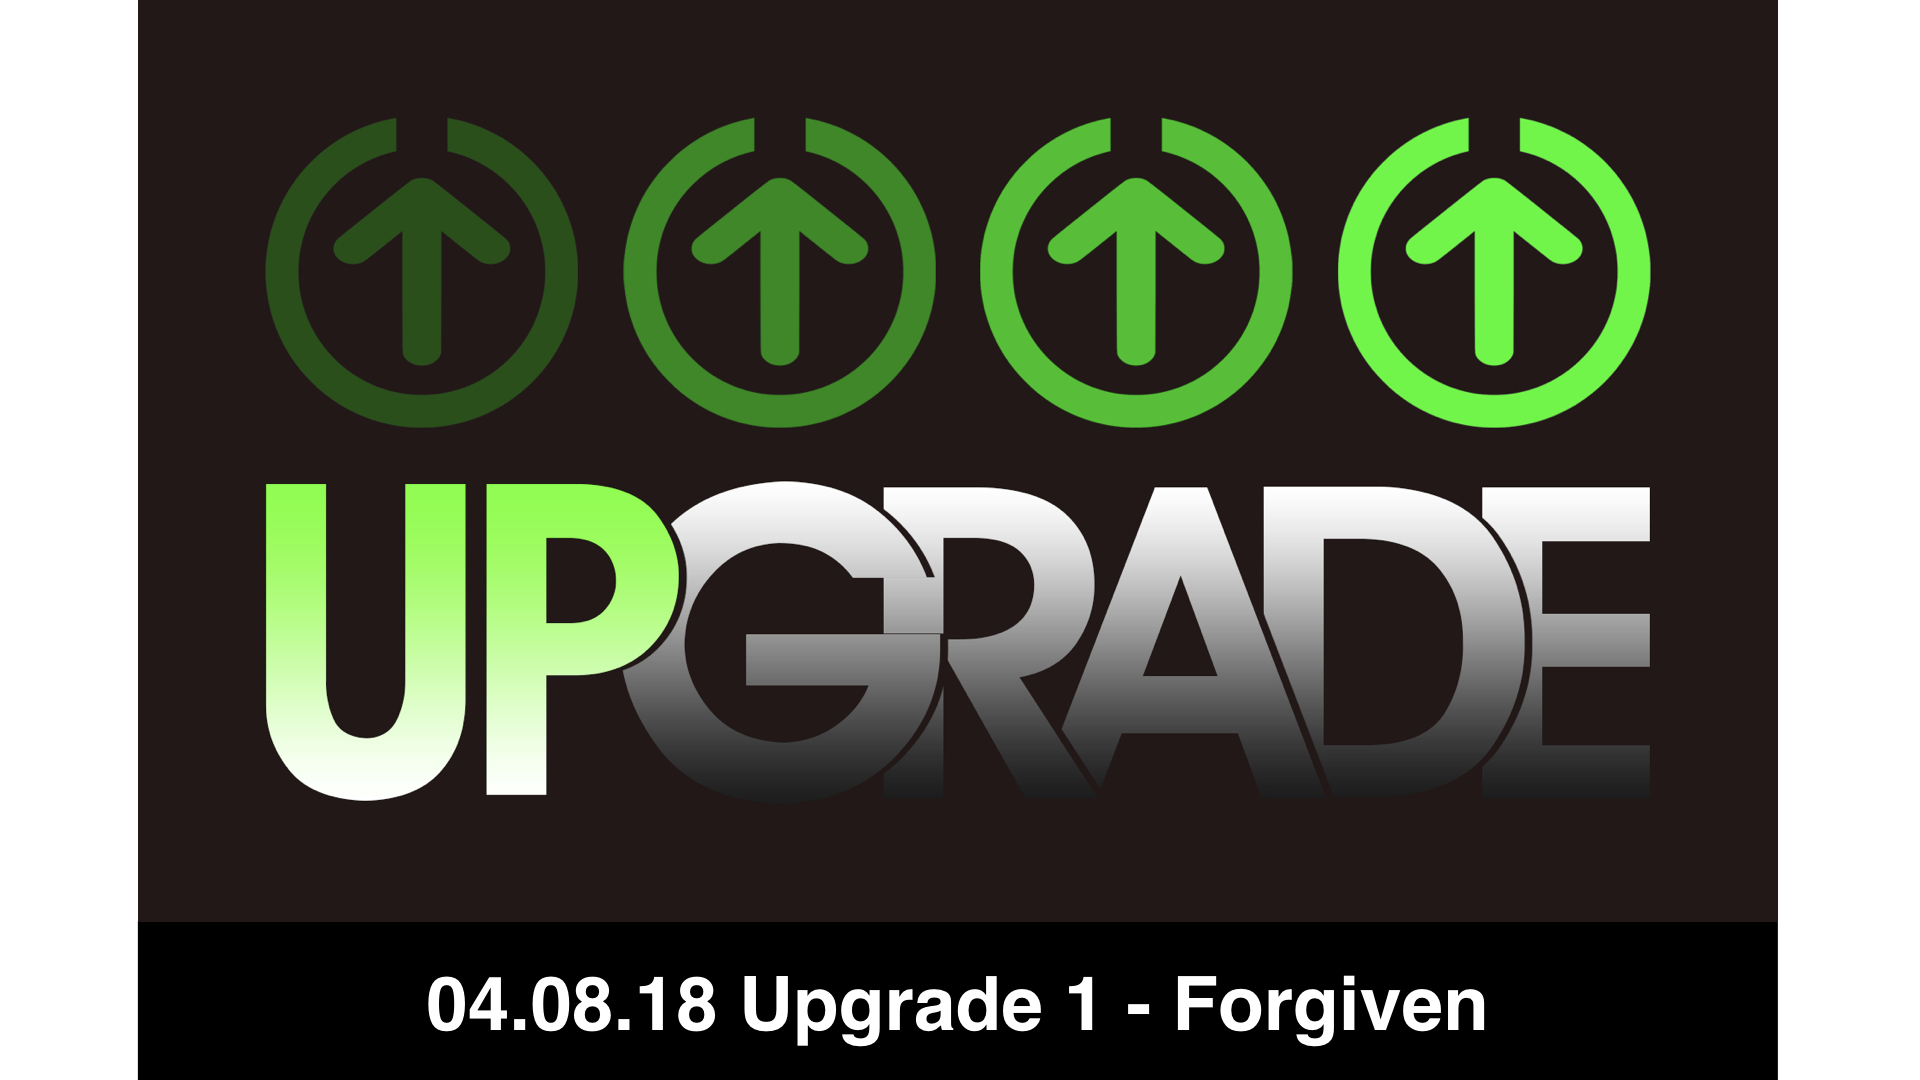 04.05.18 Upgrade 1 - Forgiven